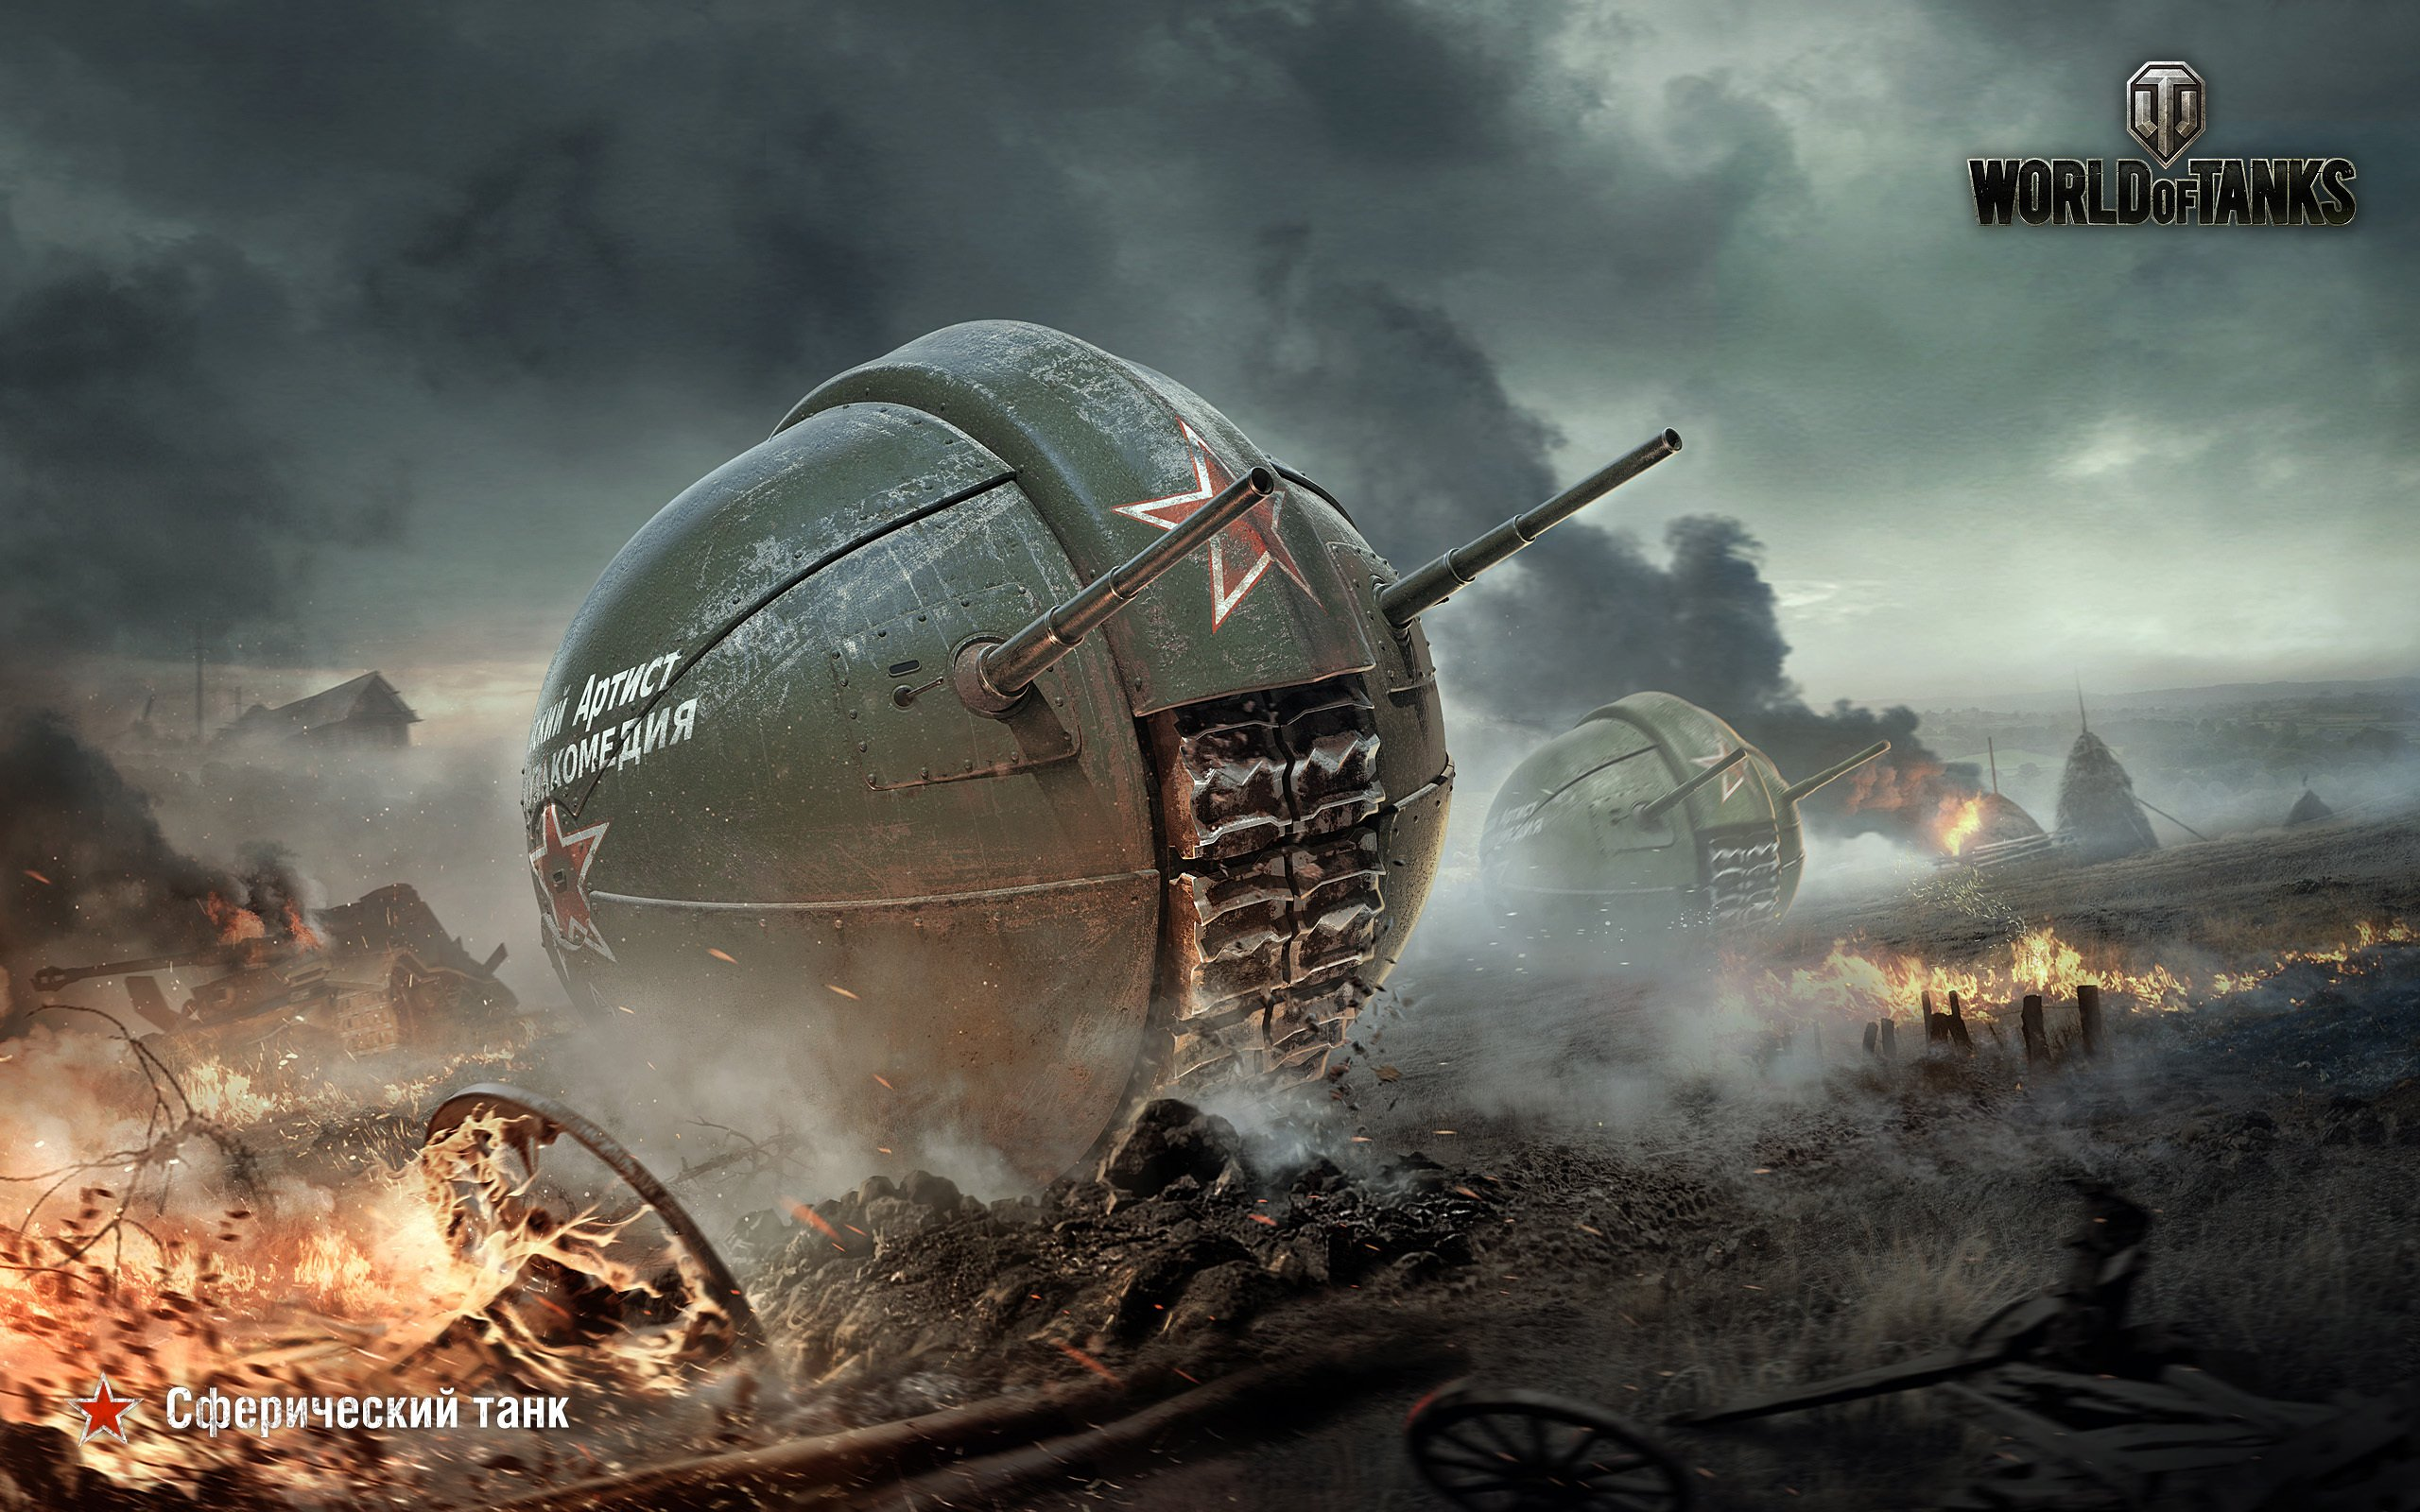 world of tanks tank battle fighting war military wallpaper